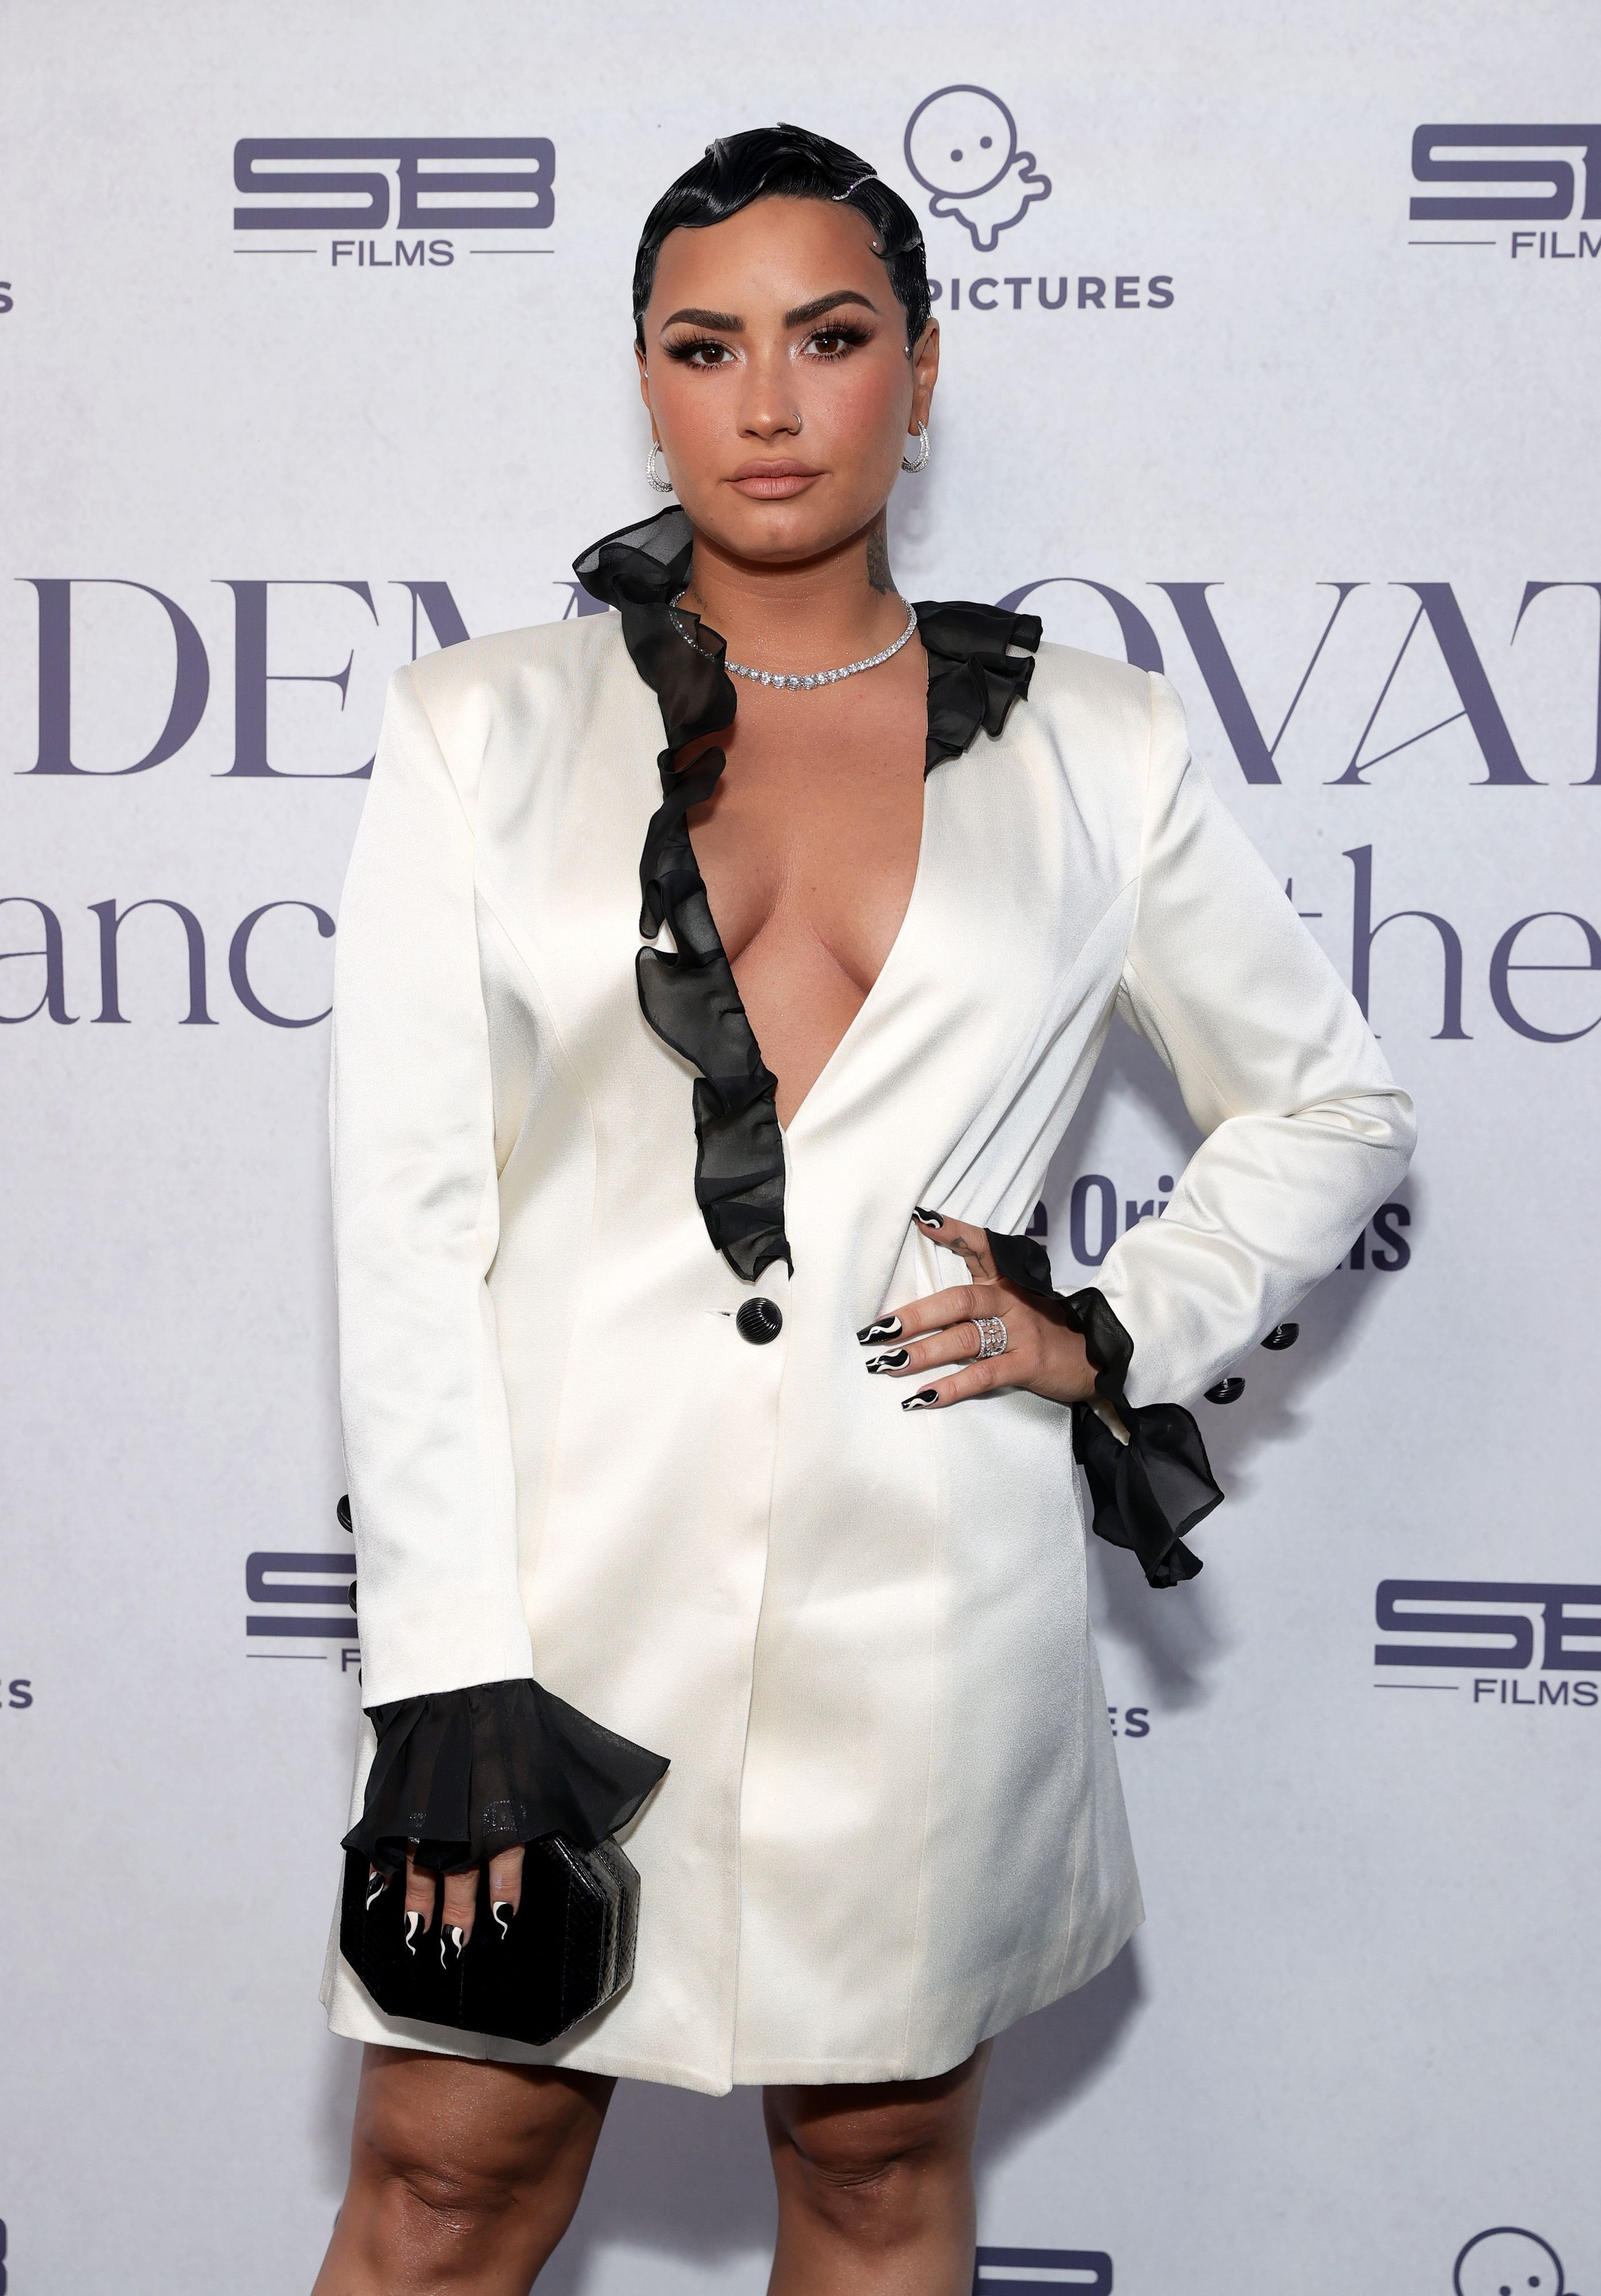 Celebrity Leo Demi Lovato shows off his style at a red carpet event.